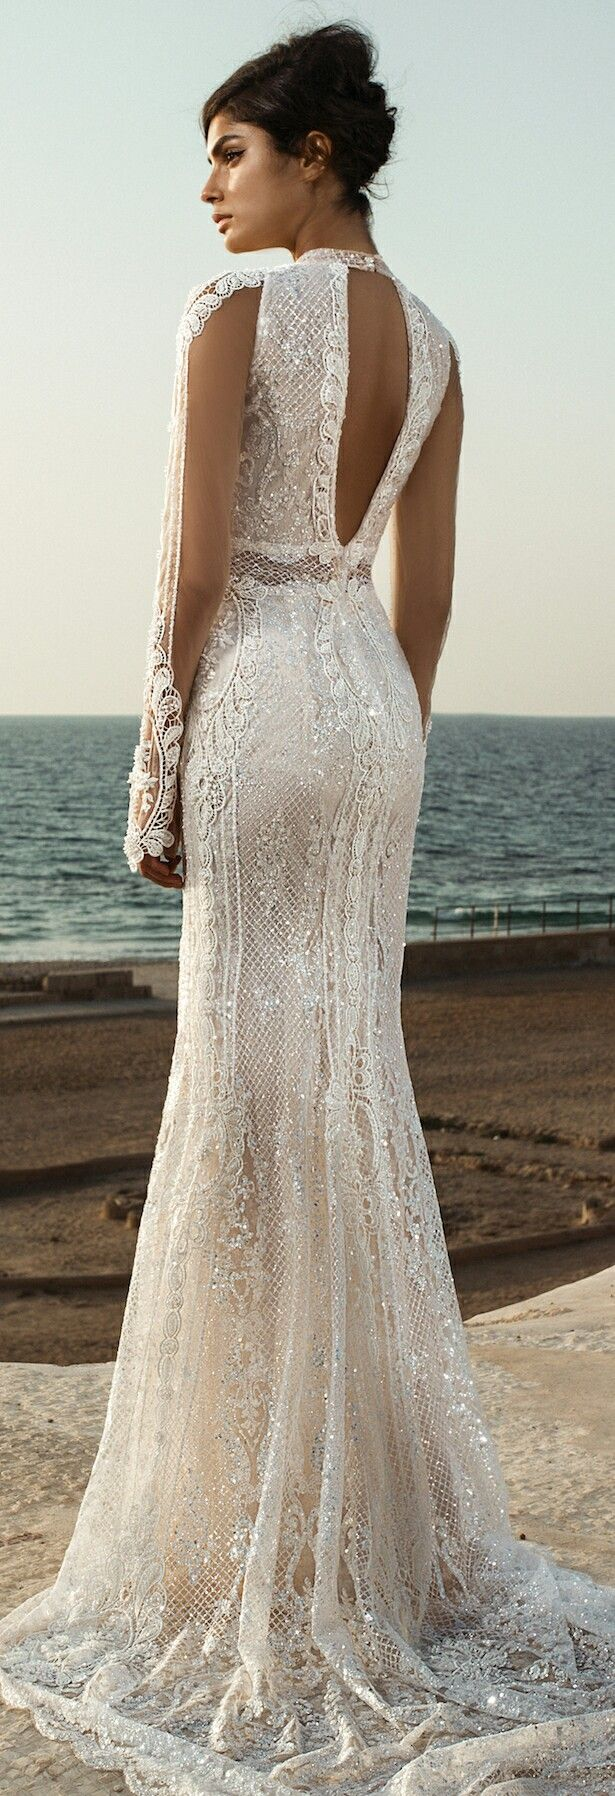 Pin by maria vetsikas on gorgeous wedding dresses pinterest